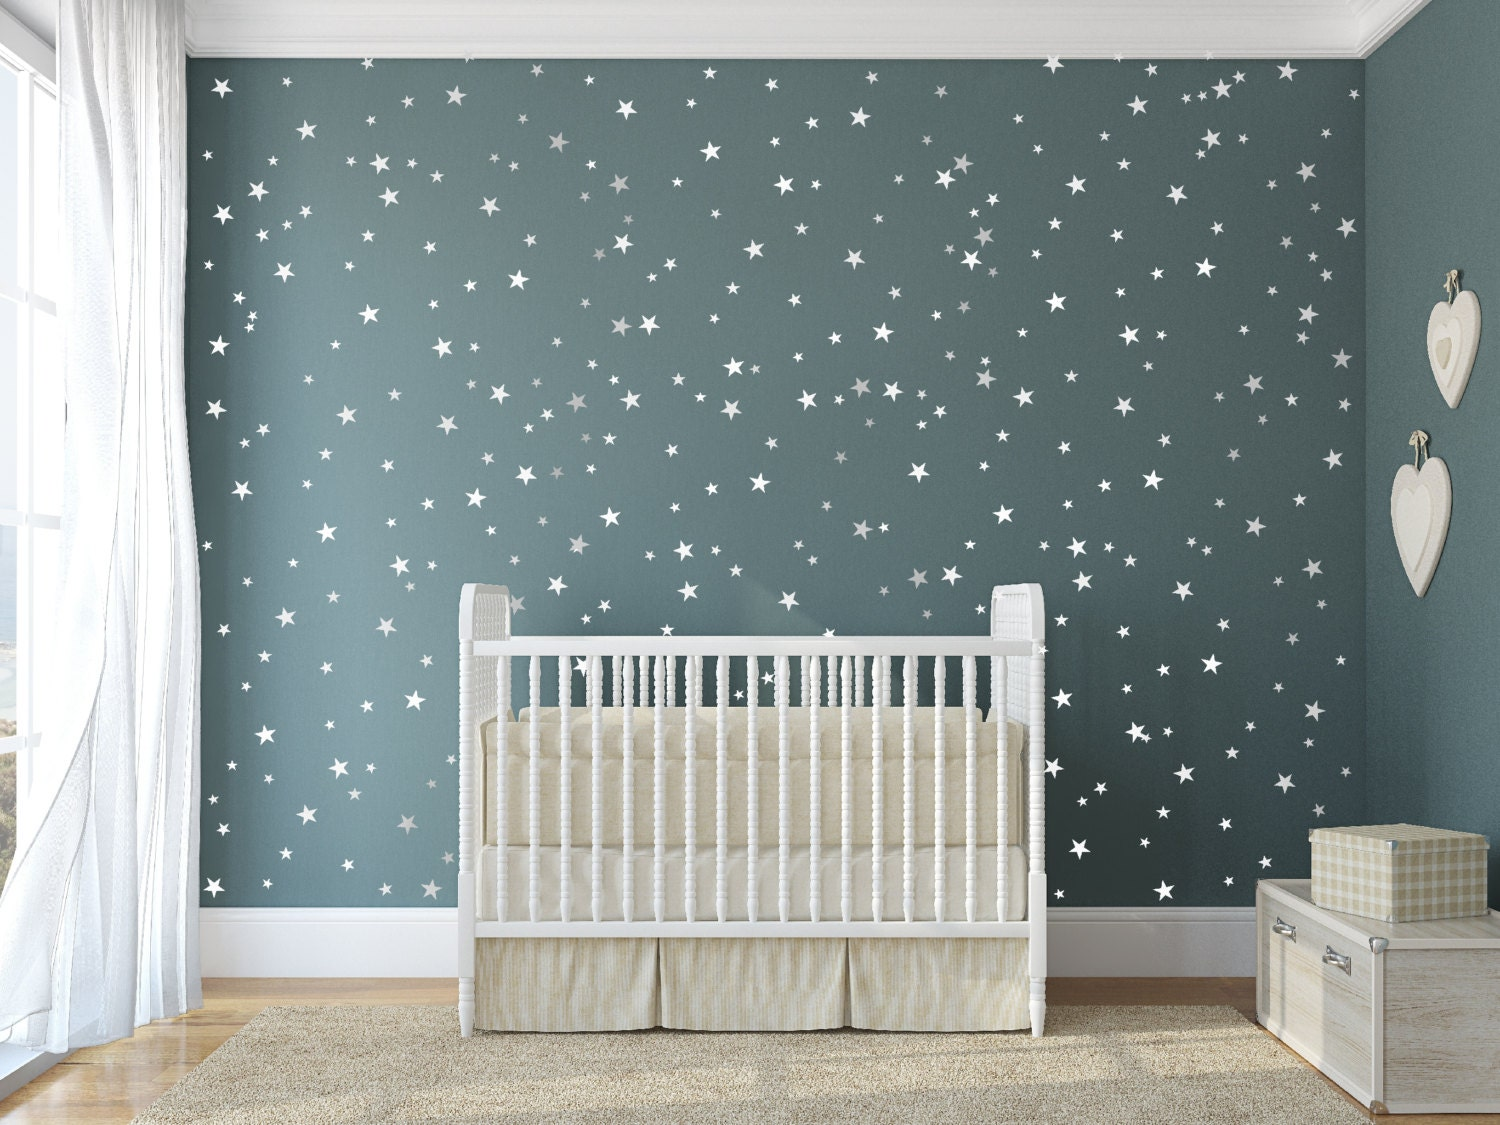 Vinyl star decals 148 silver stars star wall decal art zoom amipublicfo Gallery